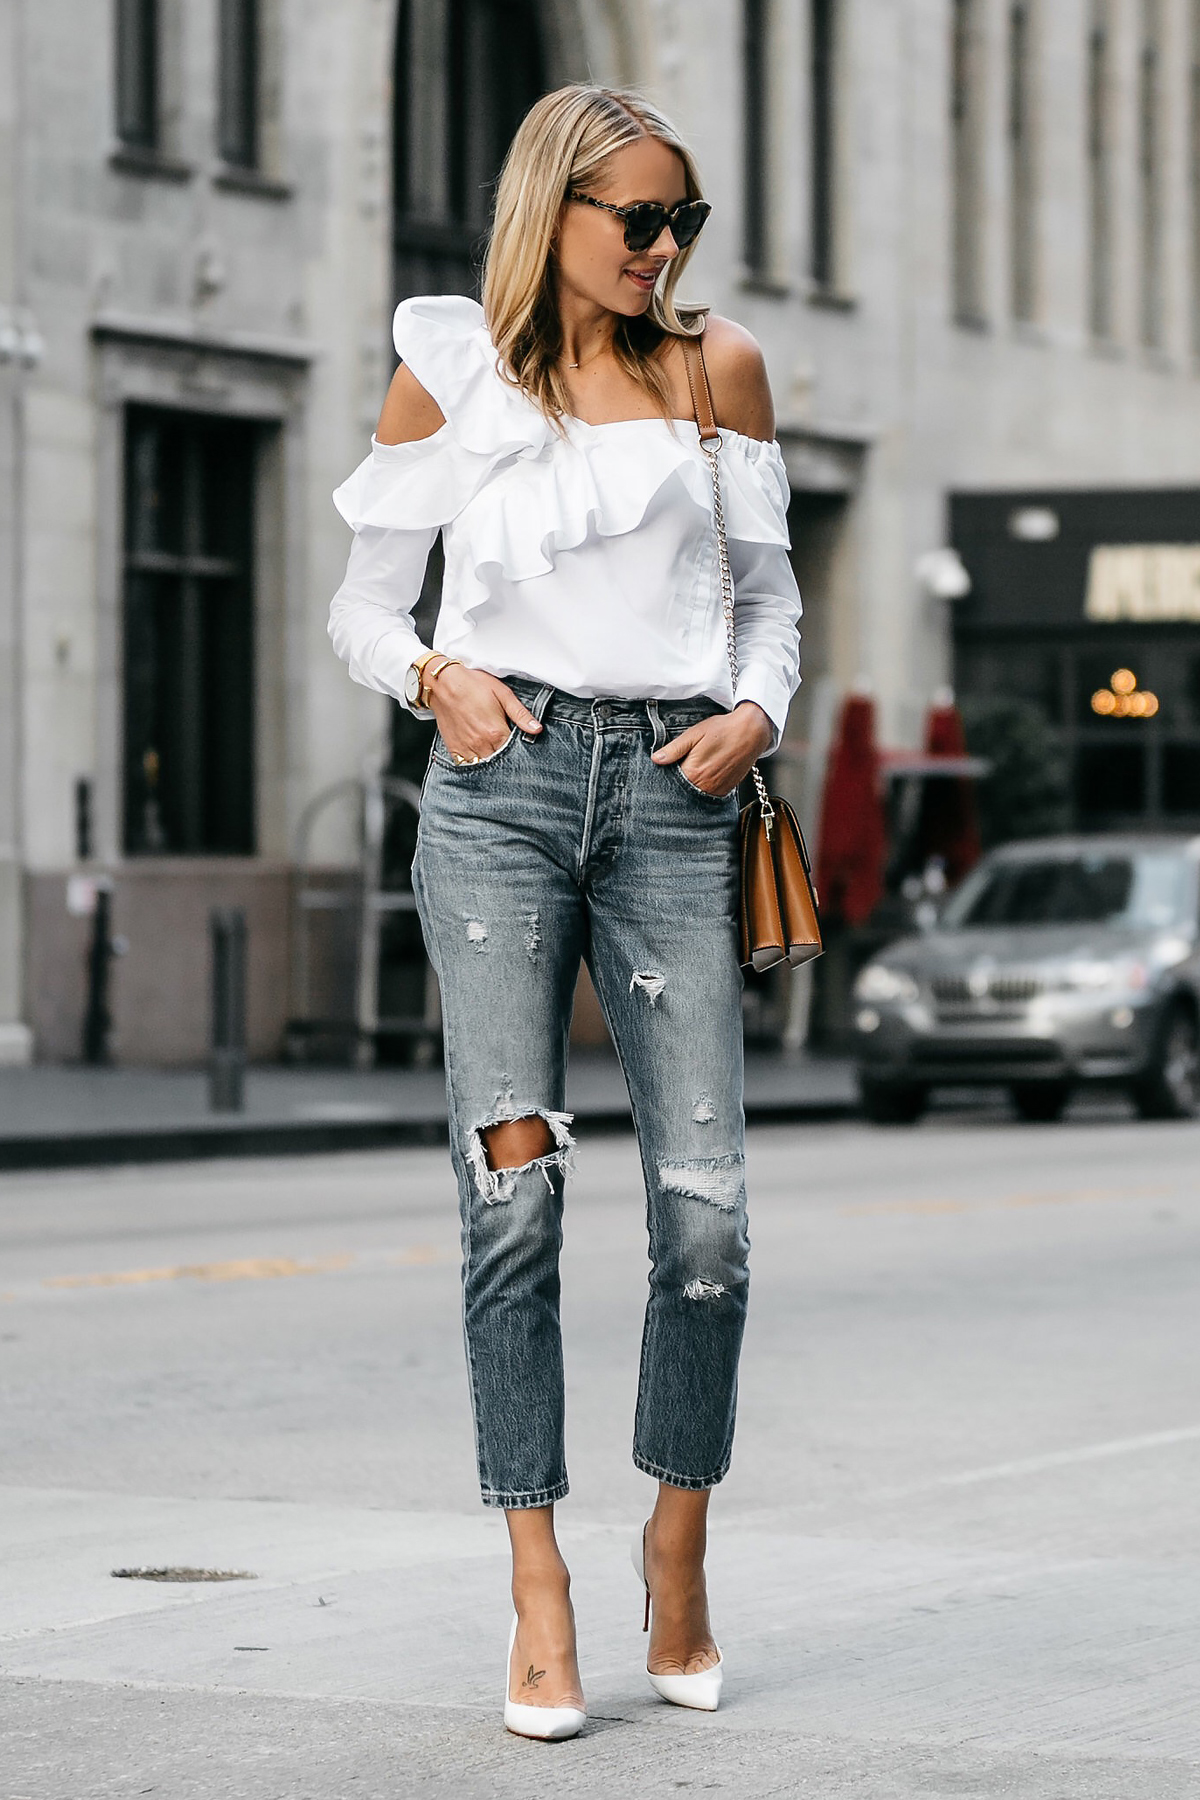 Blonde Woman Wearing Shopbop White Asymmetrical Ruffle Top Levis Denim Ripped Skinny Jeans Christian Louboutin White Pumps Street Style Dallas Blogger Fashion Blogger